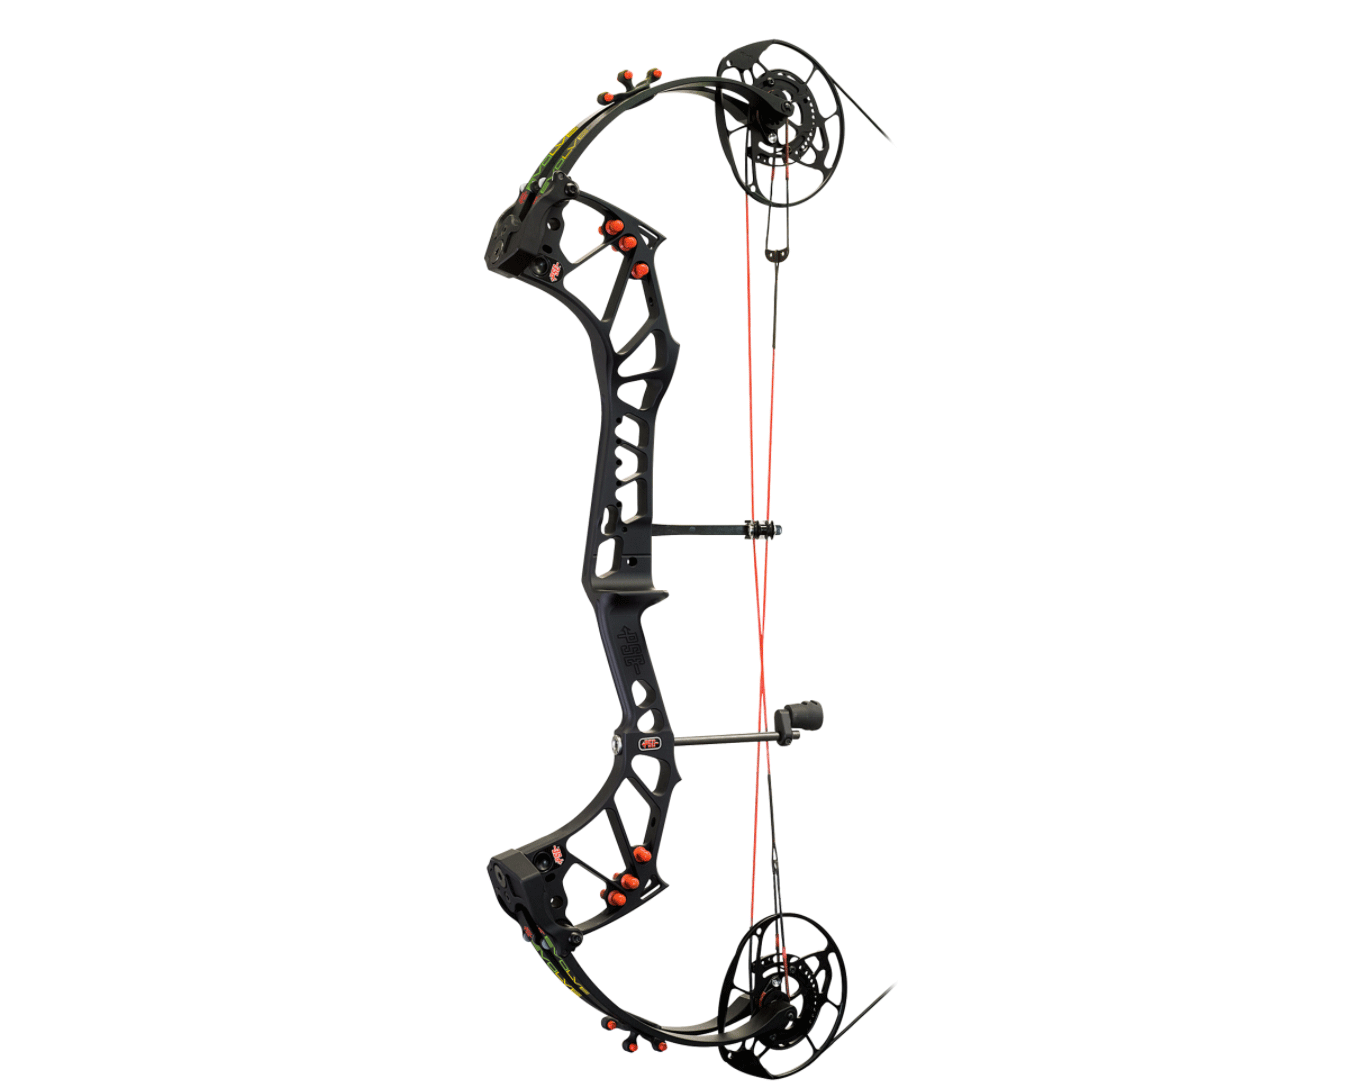 Best New Hunting Bows, Compounds | Outdoor Life